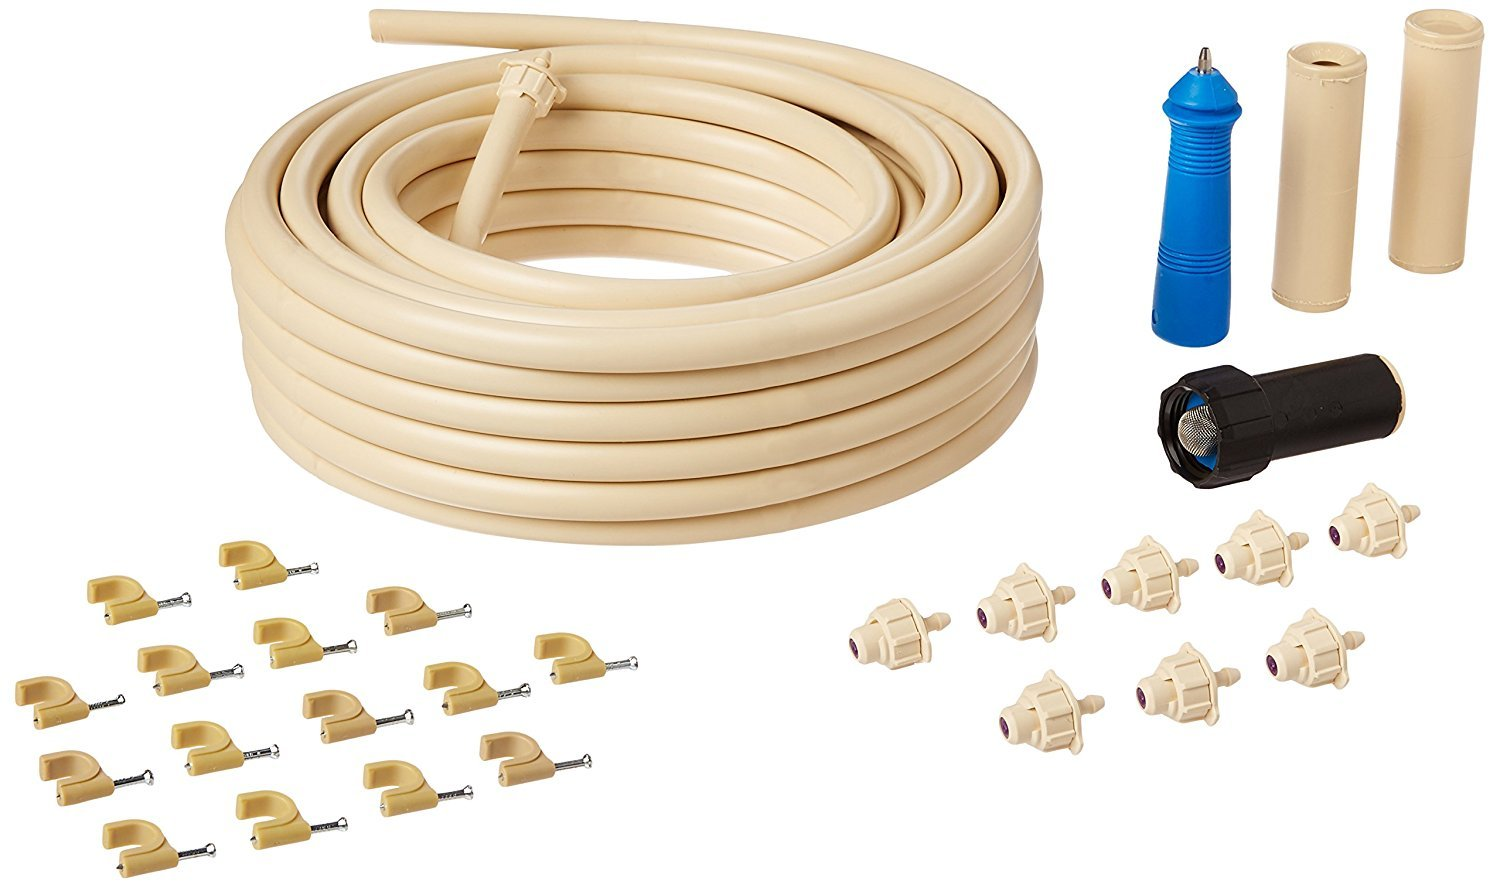 Large Pet & Horse / Livestock Outdoor Evaporative Mist Cooling System 50' - 3/8'' tubing - Includes : (Hose Nozzle Adapter, Misting Nozzles, Punch Tool, Mounts & Fittings)